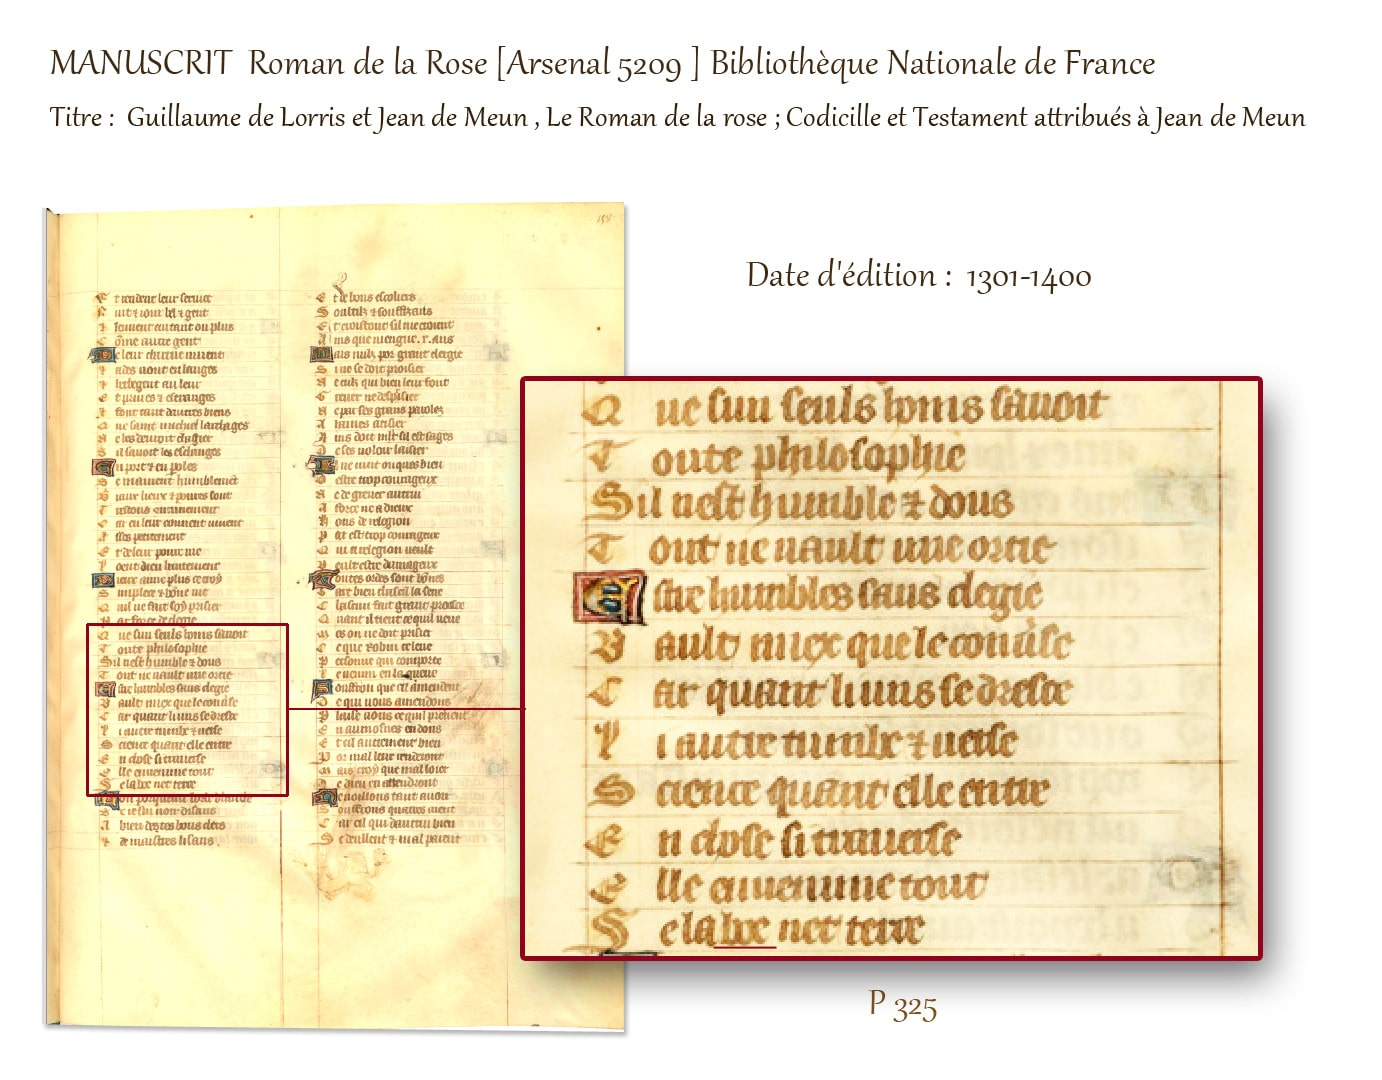 citations_medievales_analyses_manuscrit_ancien_bnf_codicille_jean_de_meung